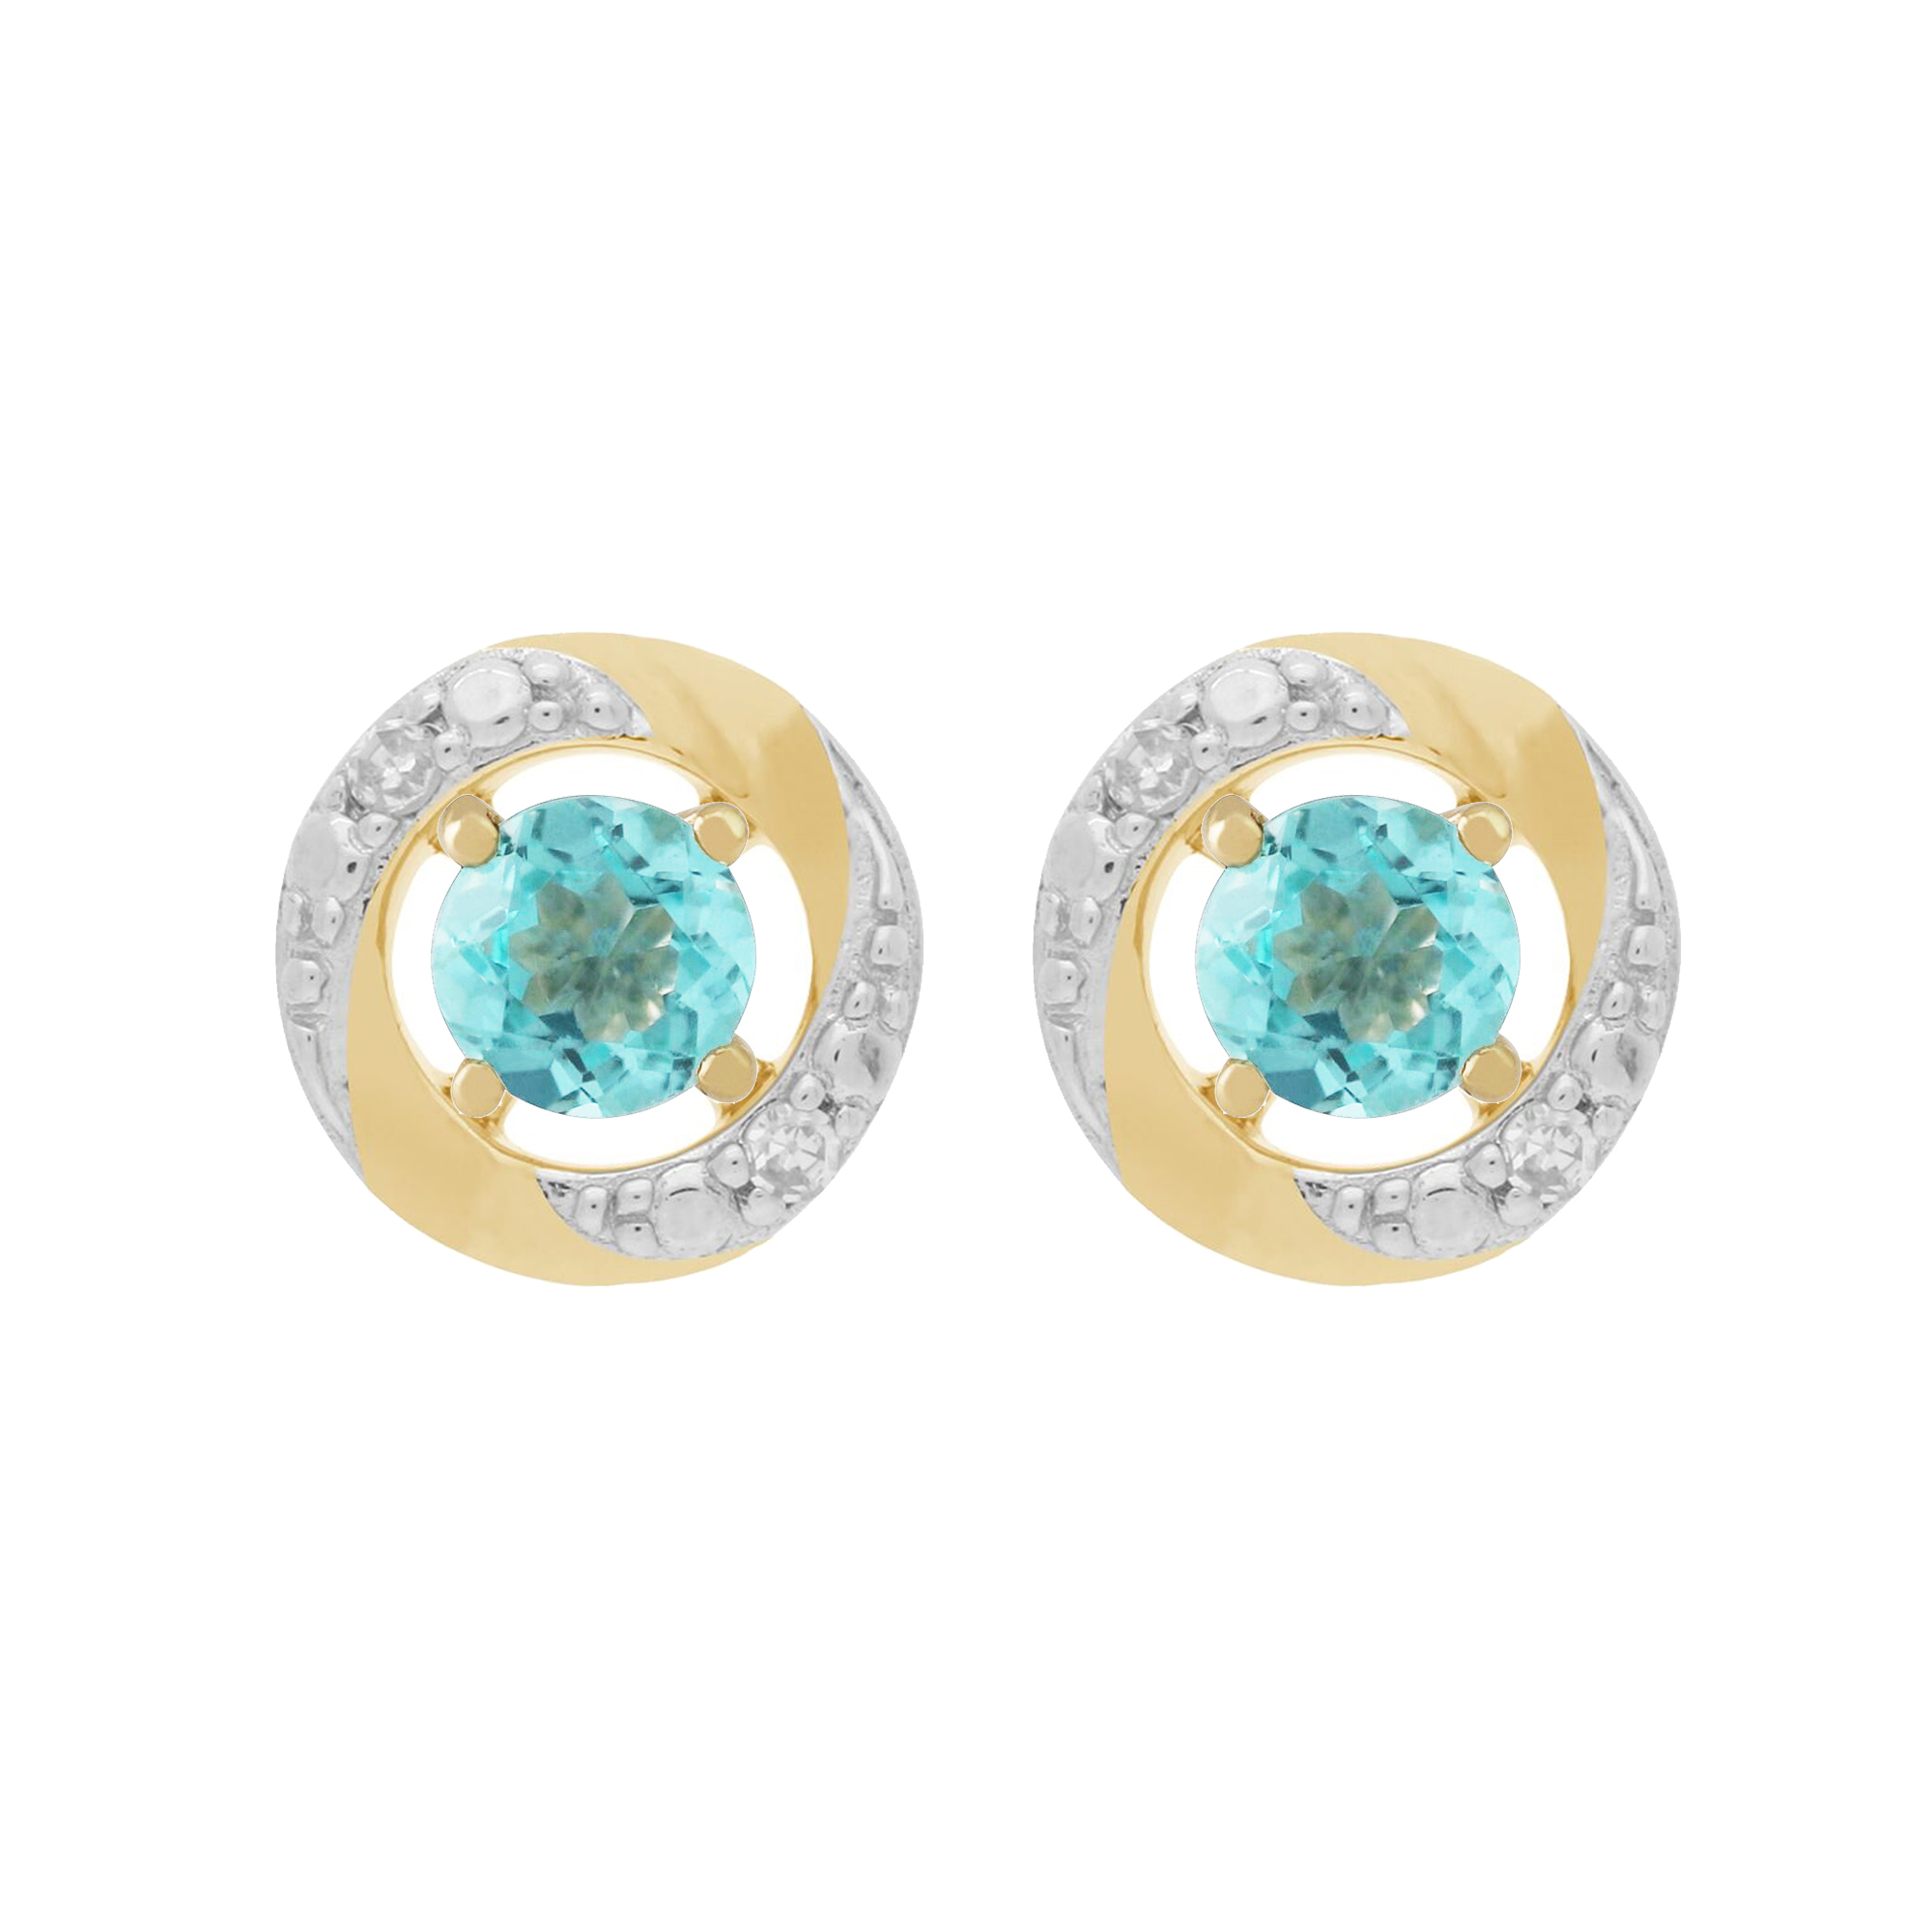 apatite miracle silver and earrings store mirablu